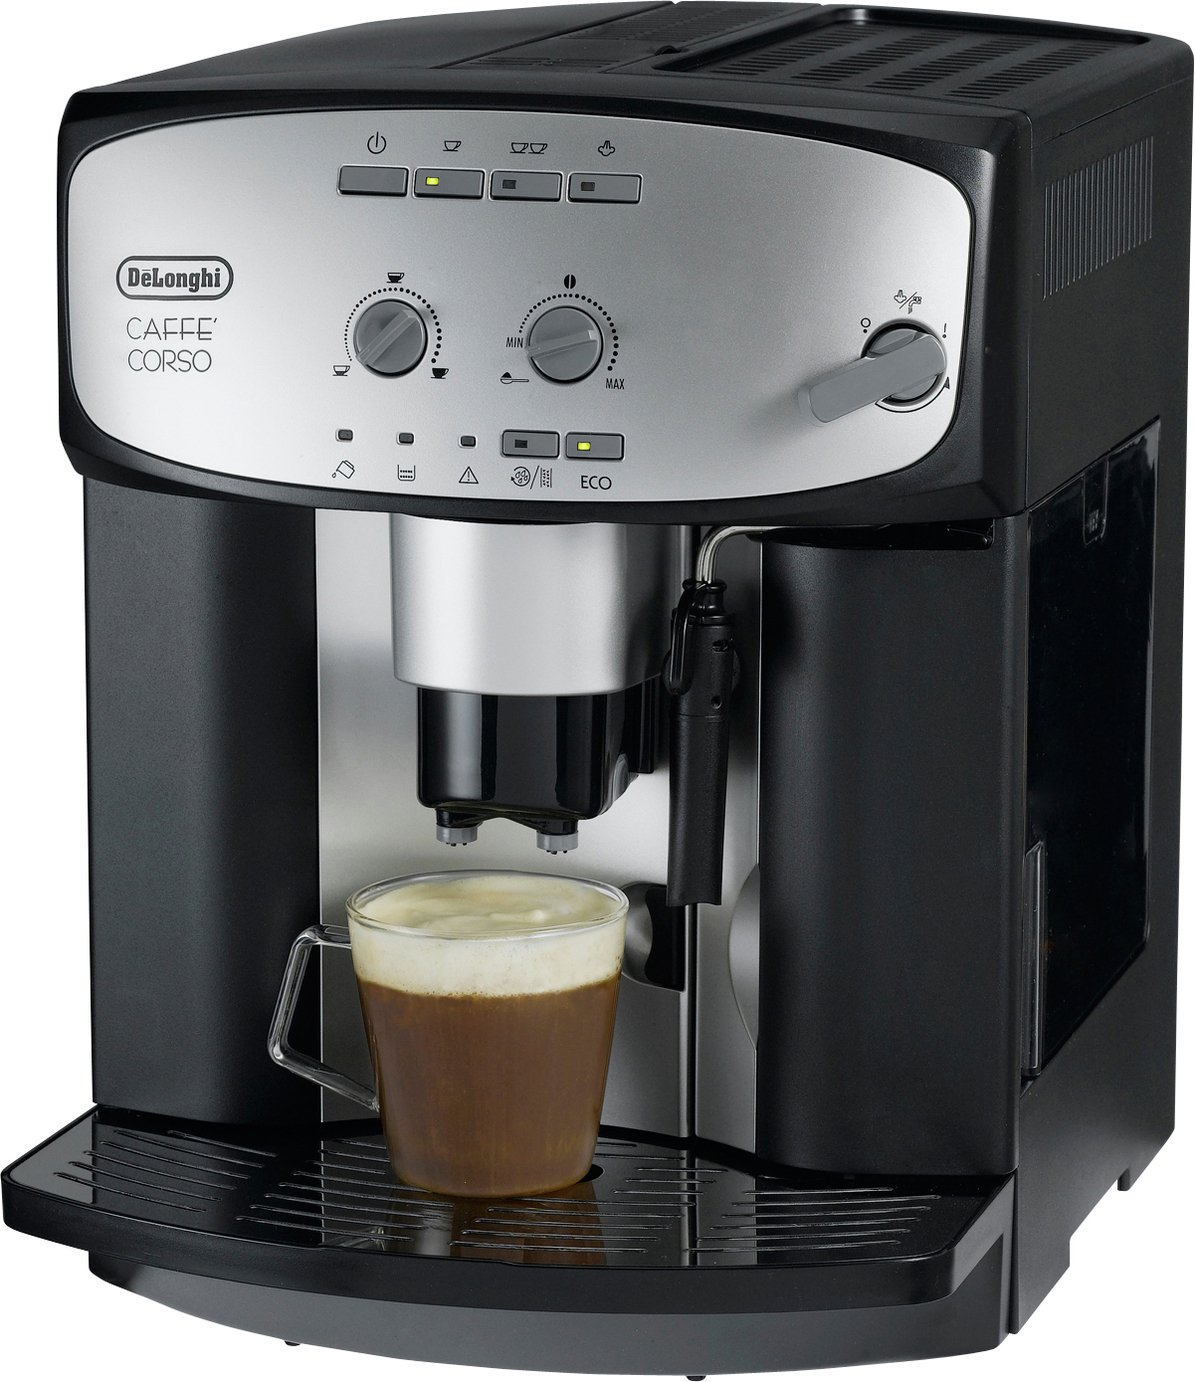 sale on de 39 longhi esam2800 cafe corso bean to cup coffee machine delonghi now available our. Black Bedroom Furniture Sets. Home Design Ideas